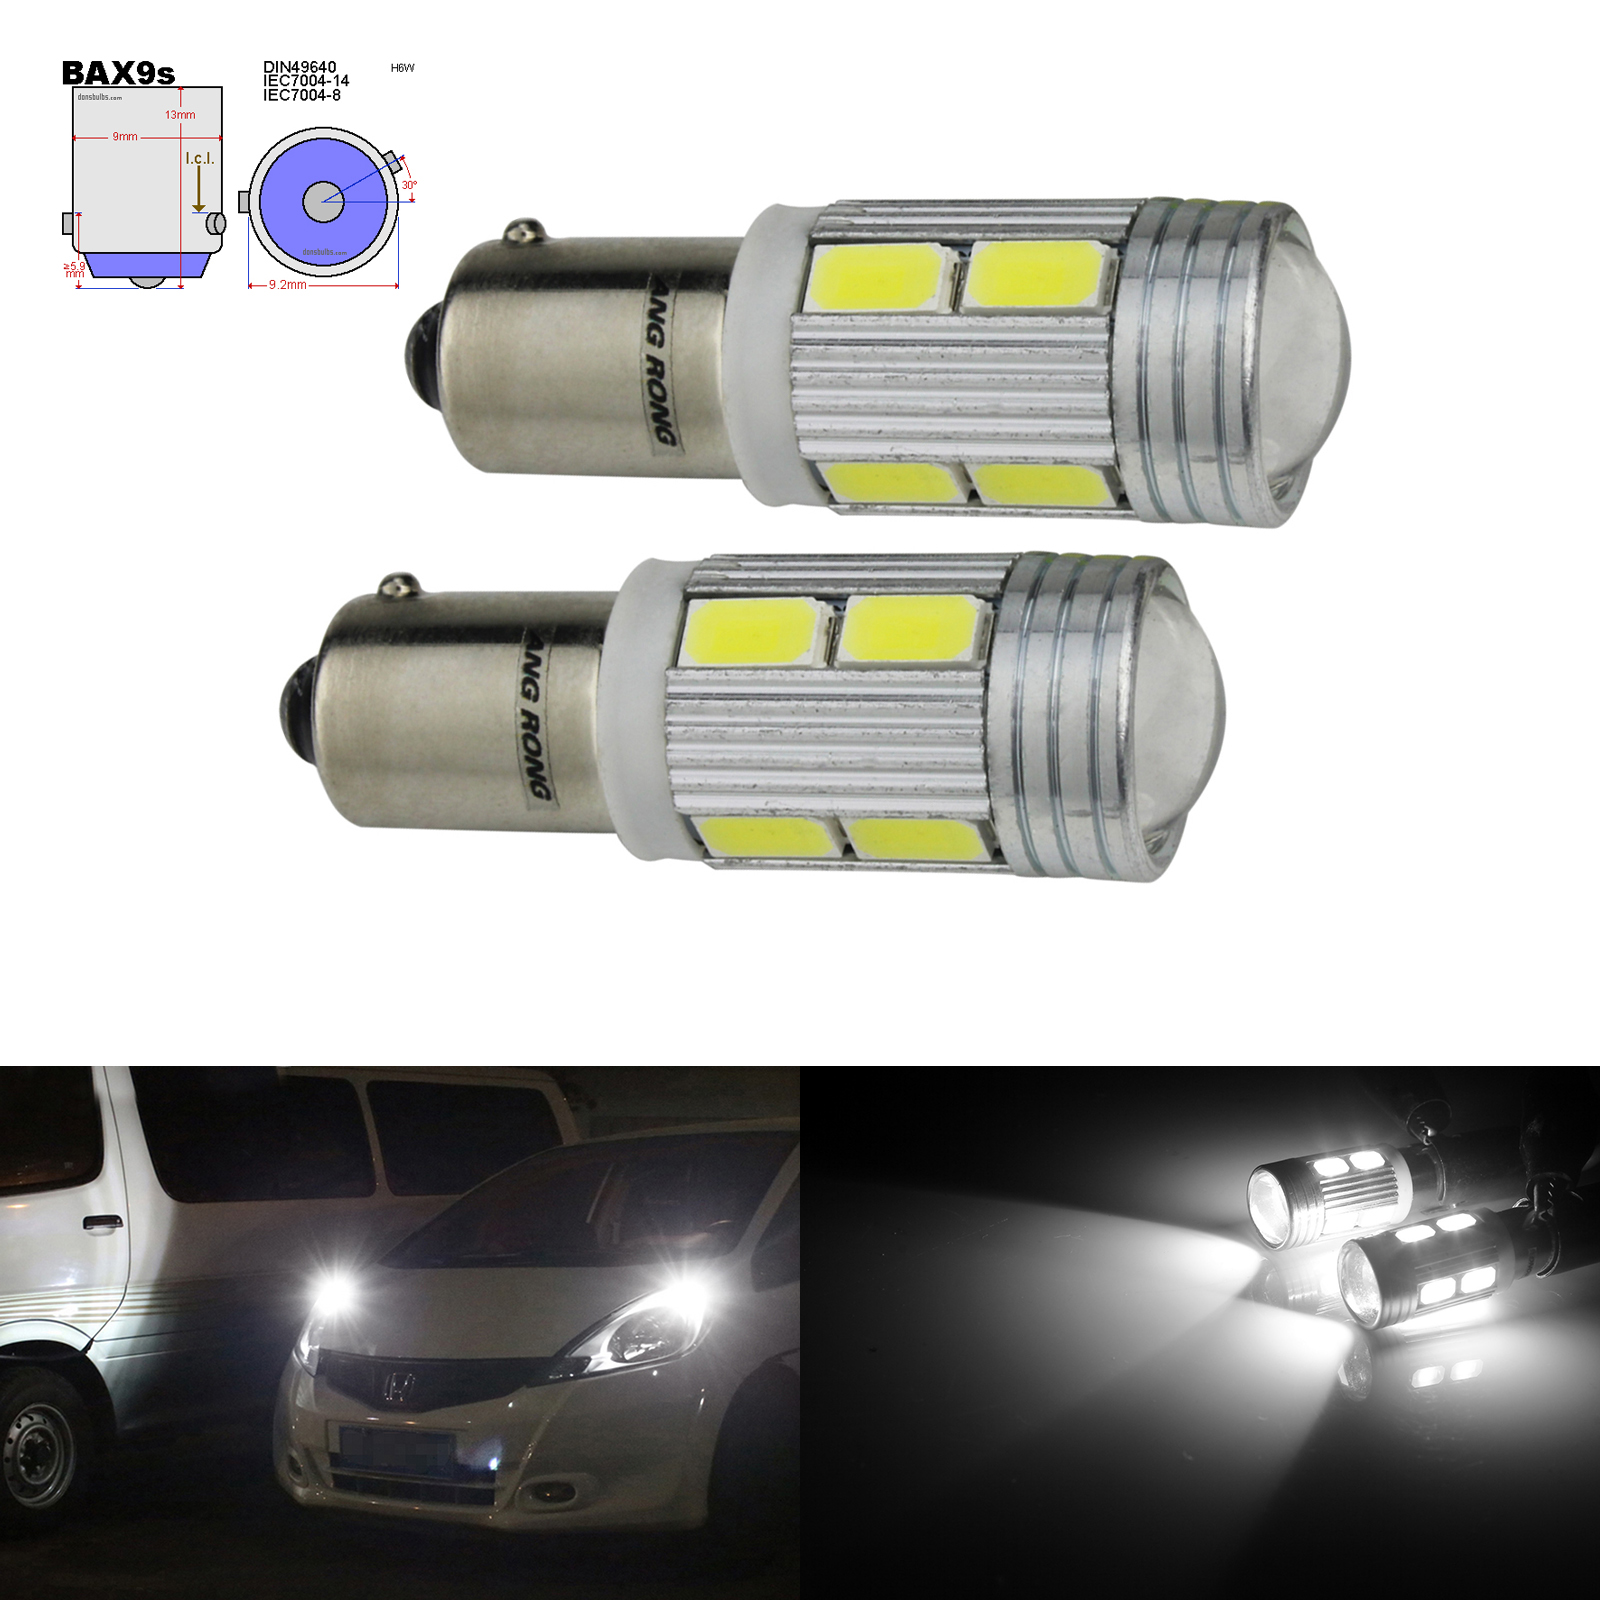 ANGRONG 2pcs H6W BAX9S Bulbs 10 LED 8W Parking Sidelight White For BMW 3 series F30 <font><b>F31</b></font> F34 image